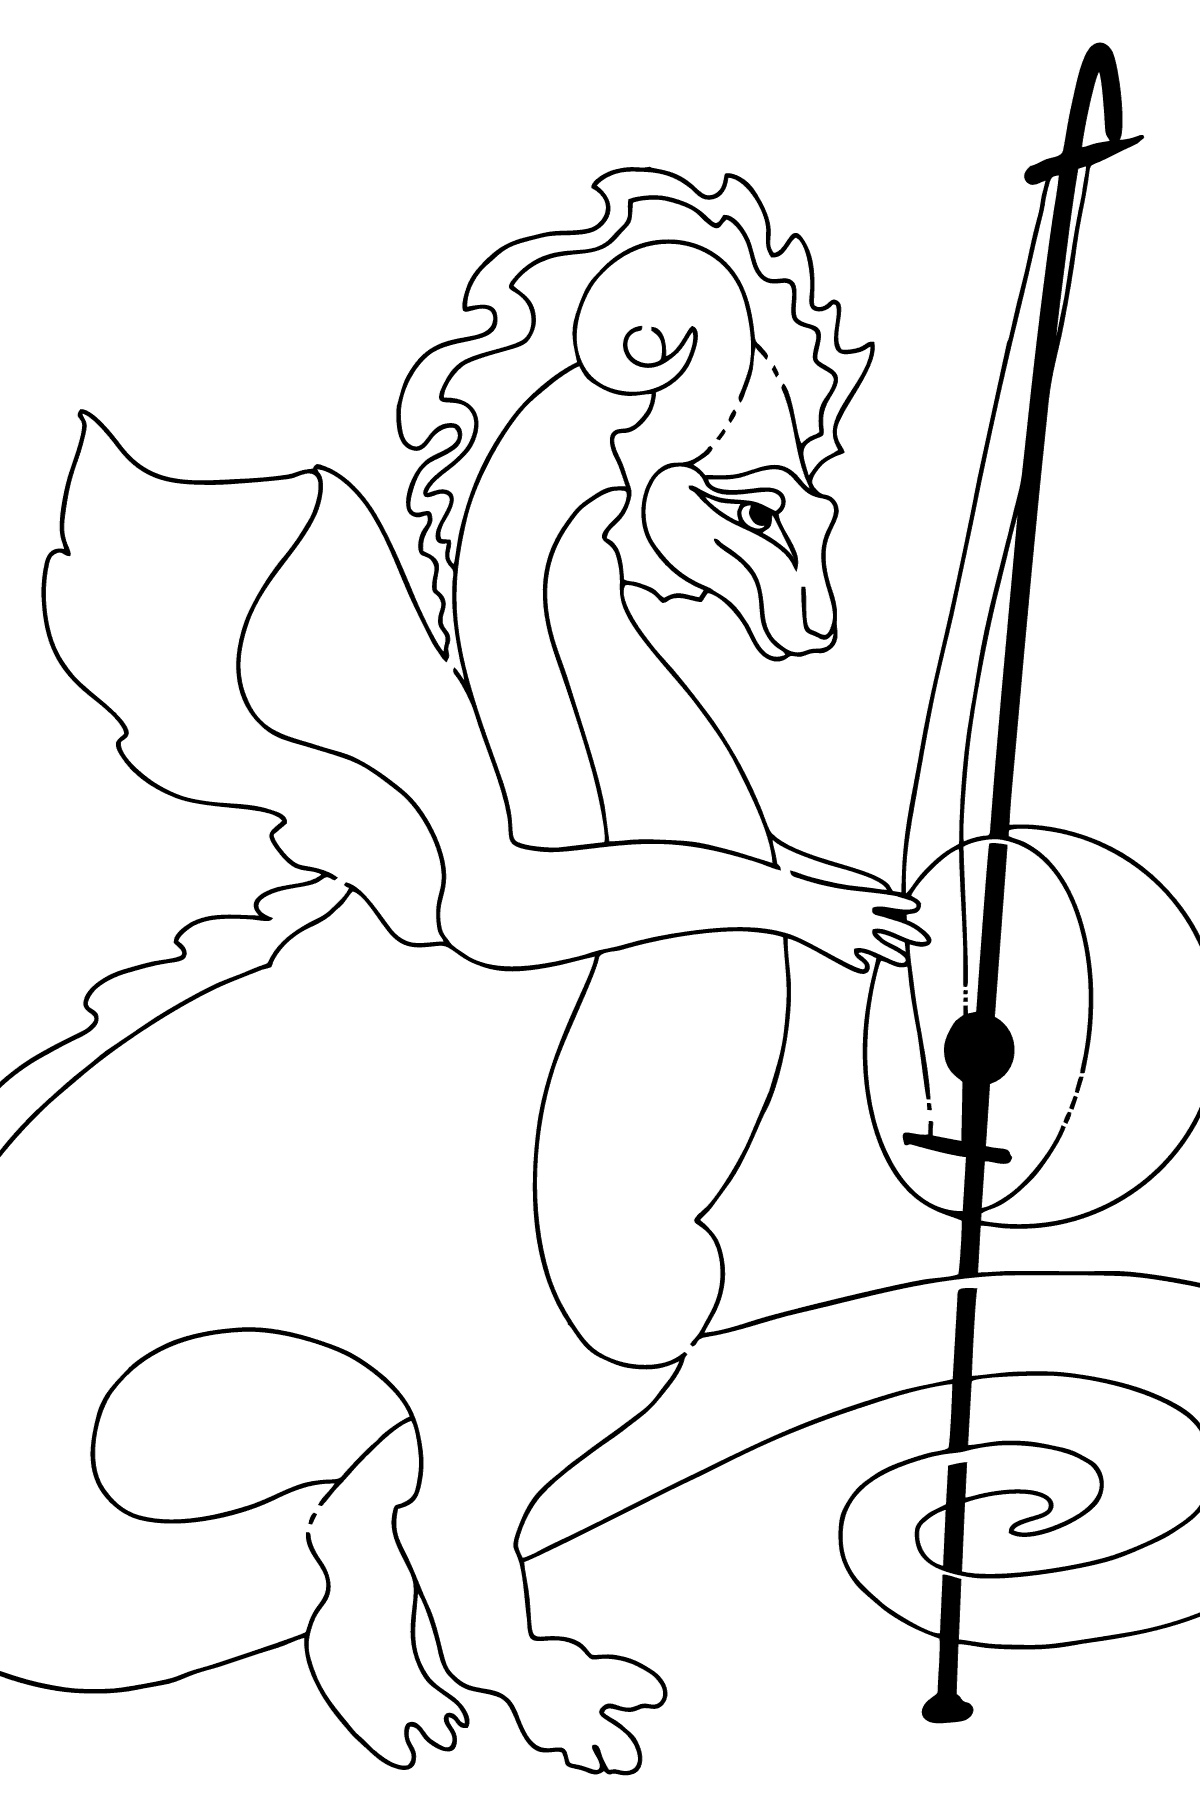 Coloring Page - A Dragon is Composing Music - Coloring Pages for Children